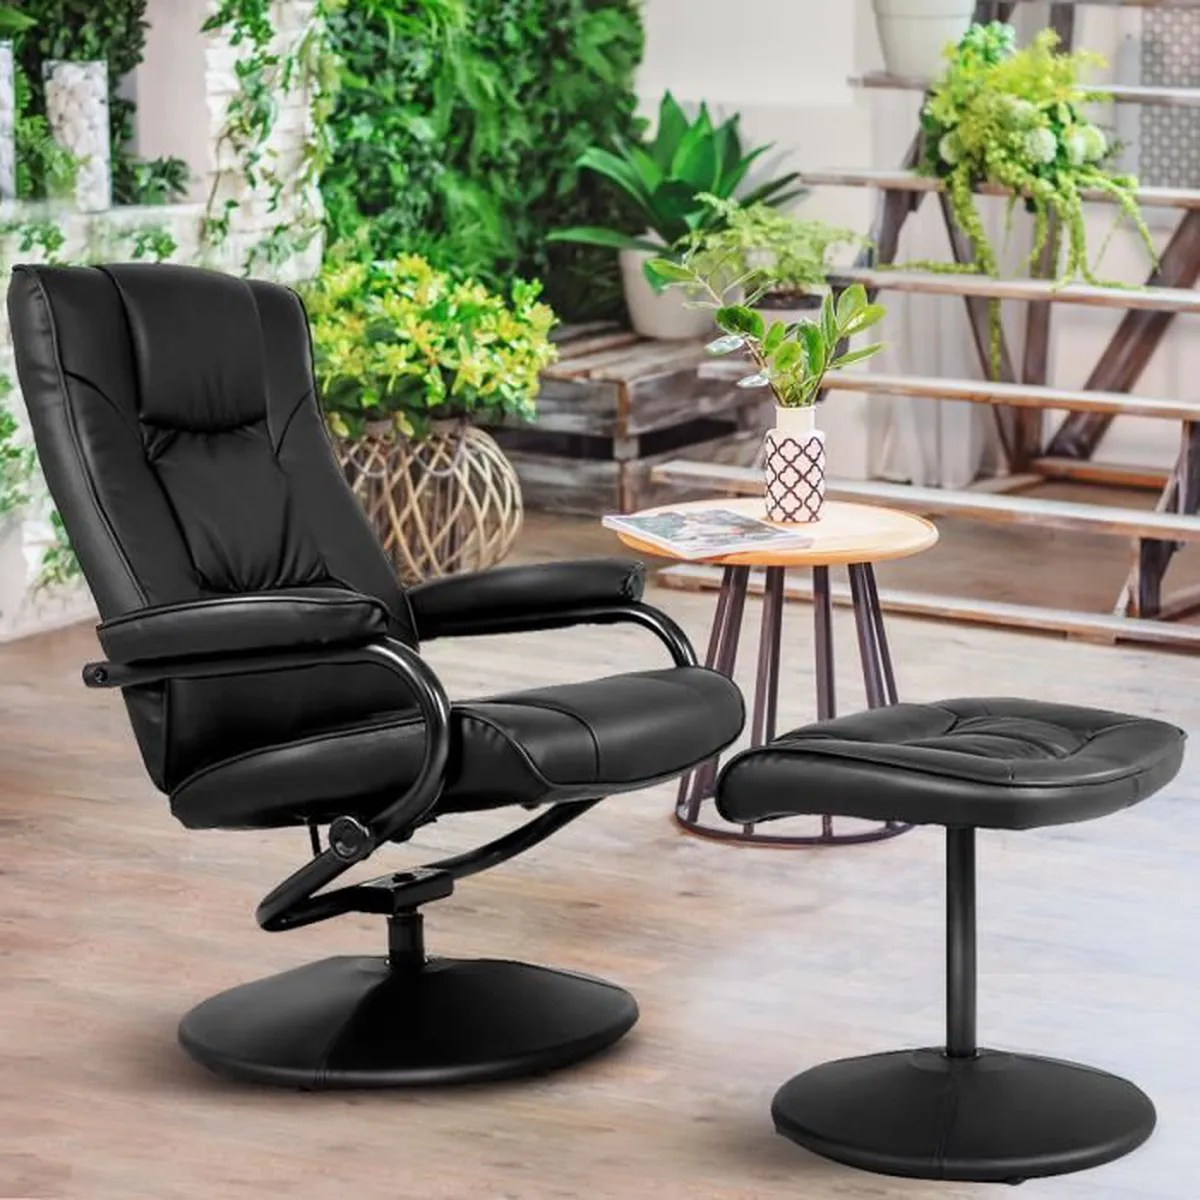 Siege Relax Fauteuil Relax Inclinable Fauteuil De Relaxation Avec Repose Pieds